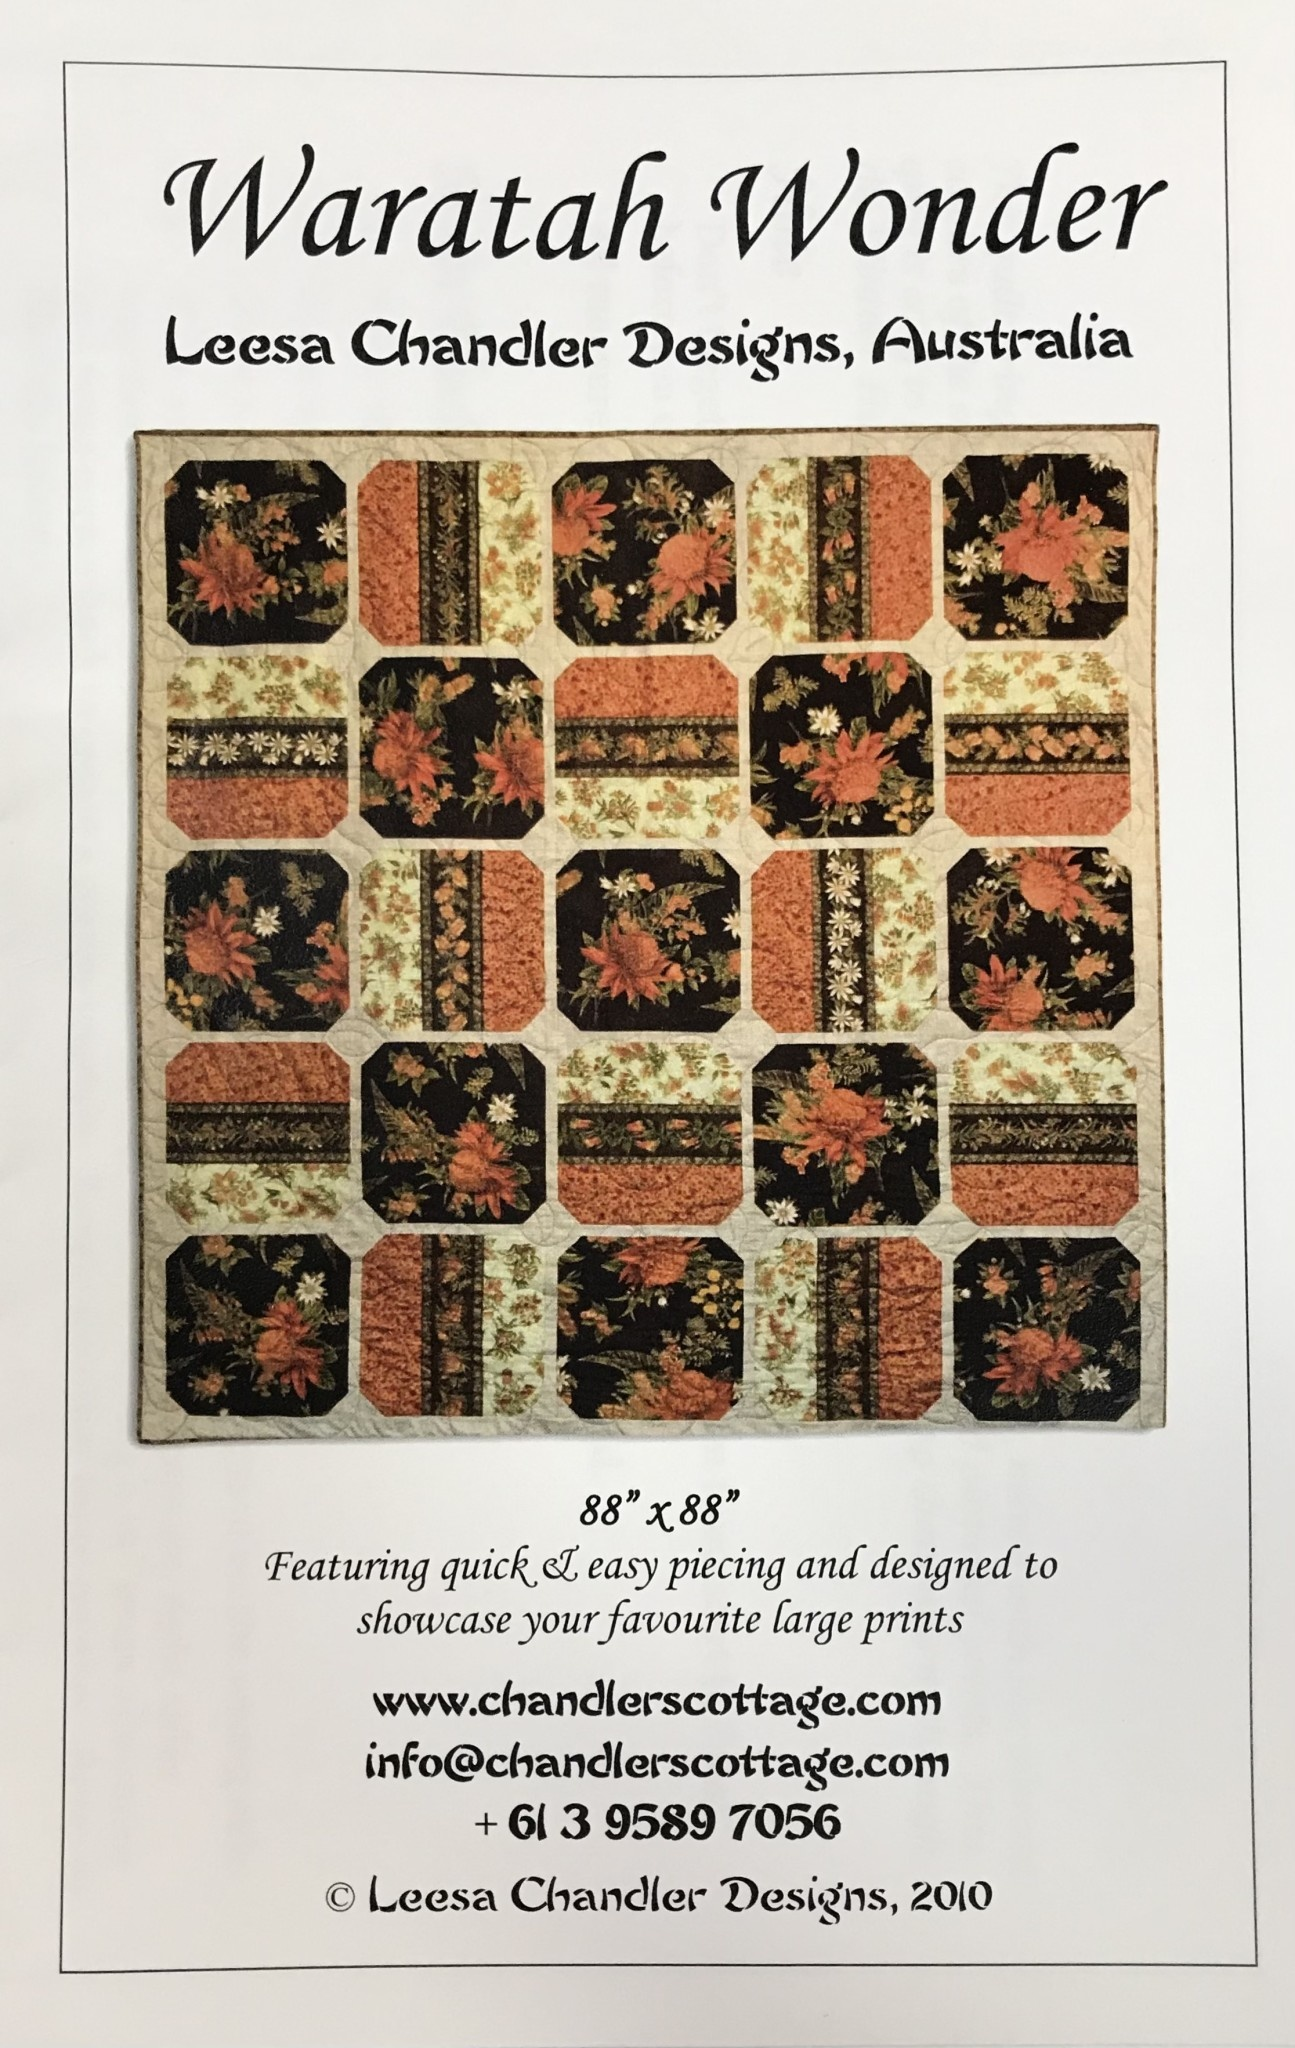 CHANDLER COTTAGE DESIGNS WARATAH WONDER PATTERN